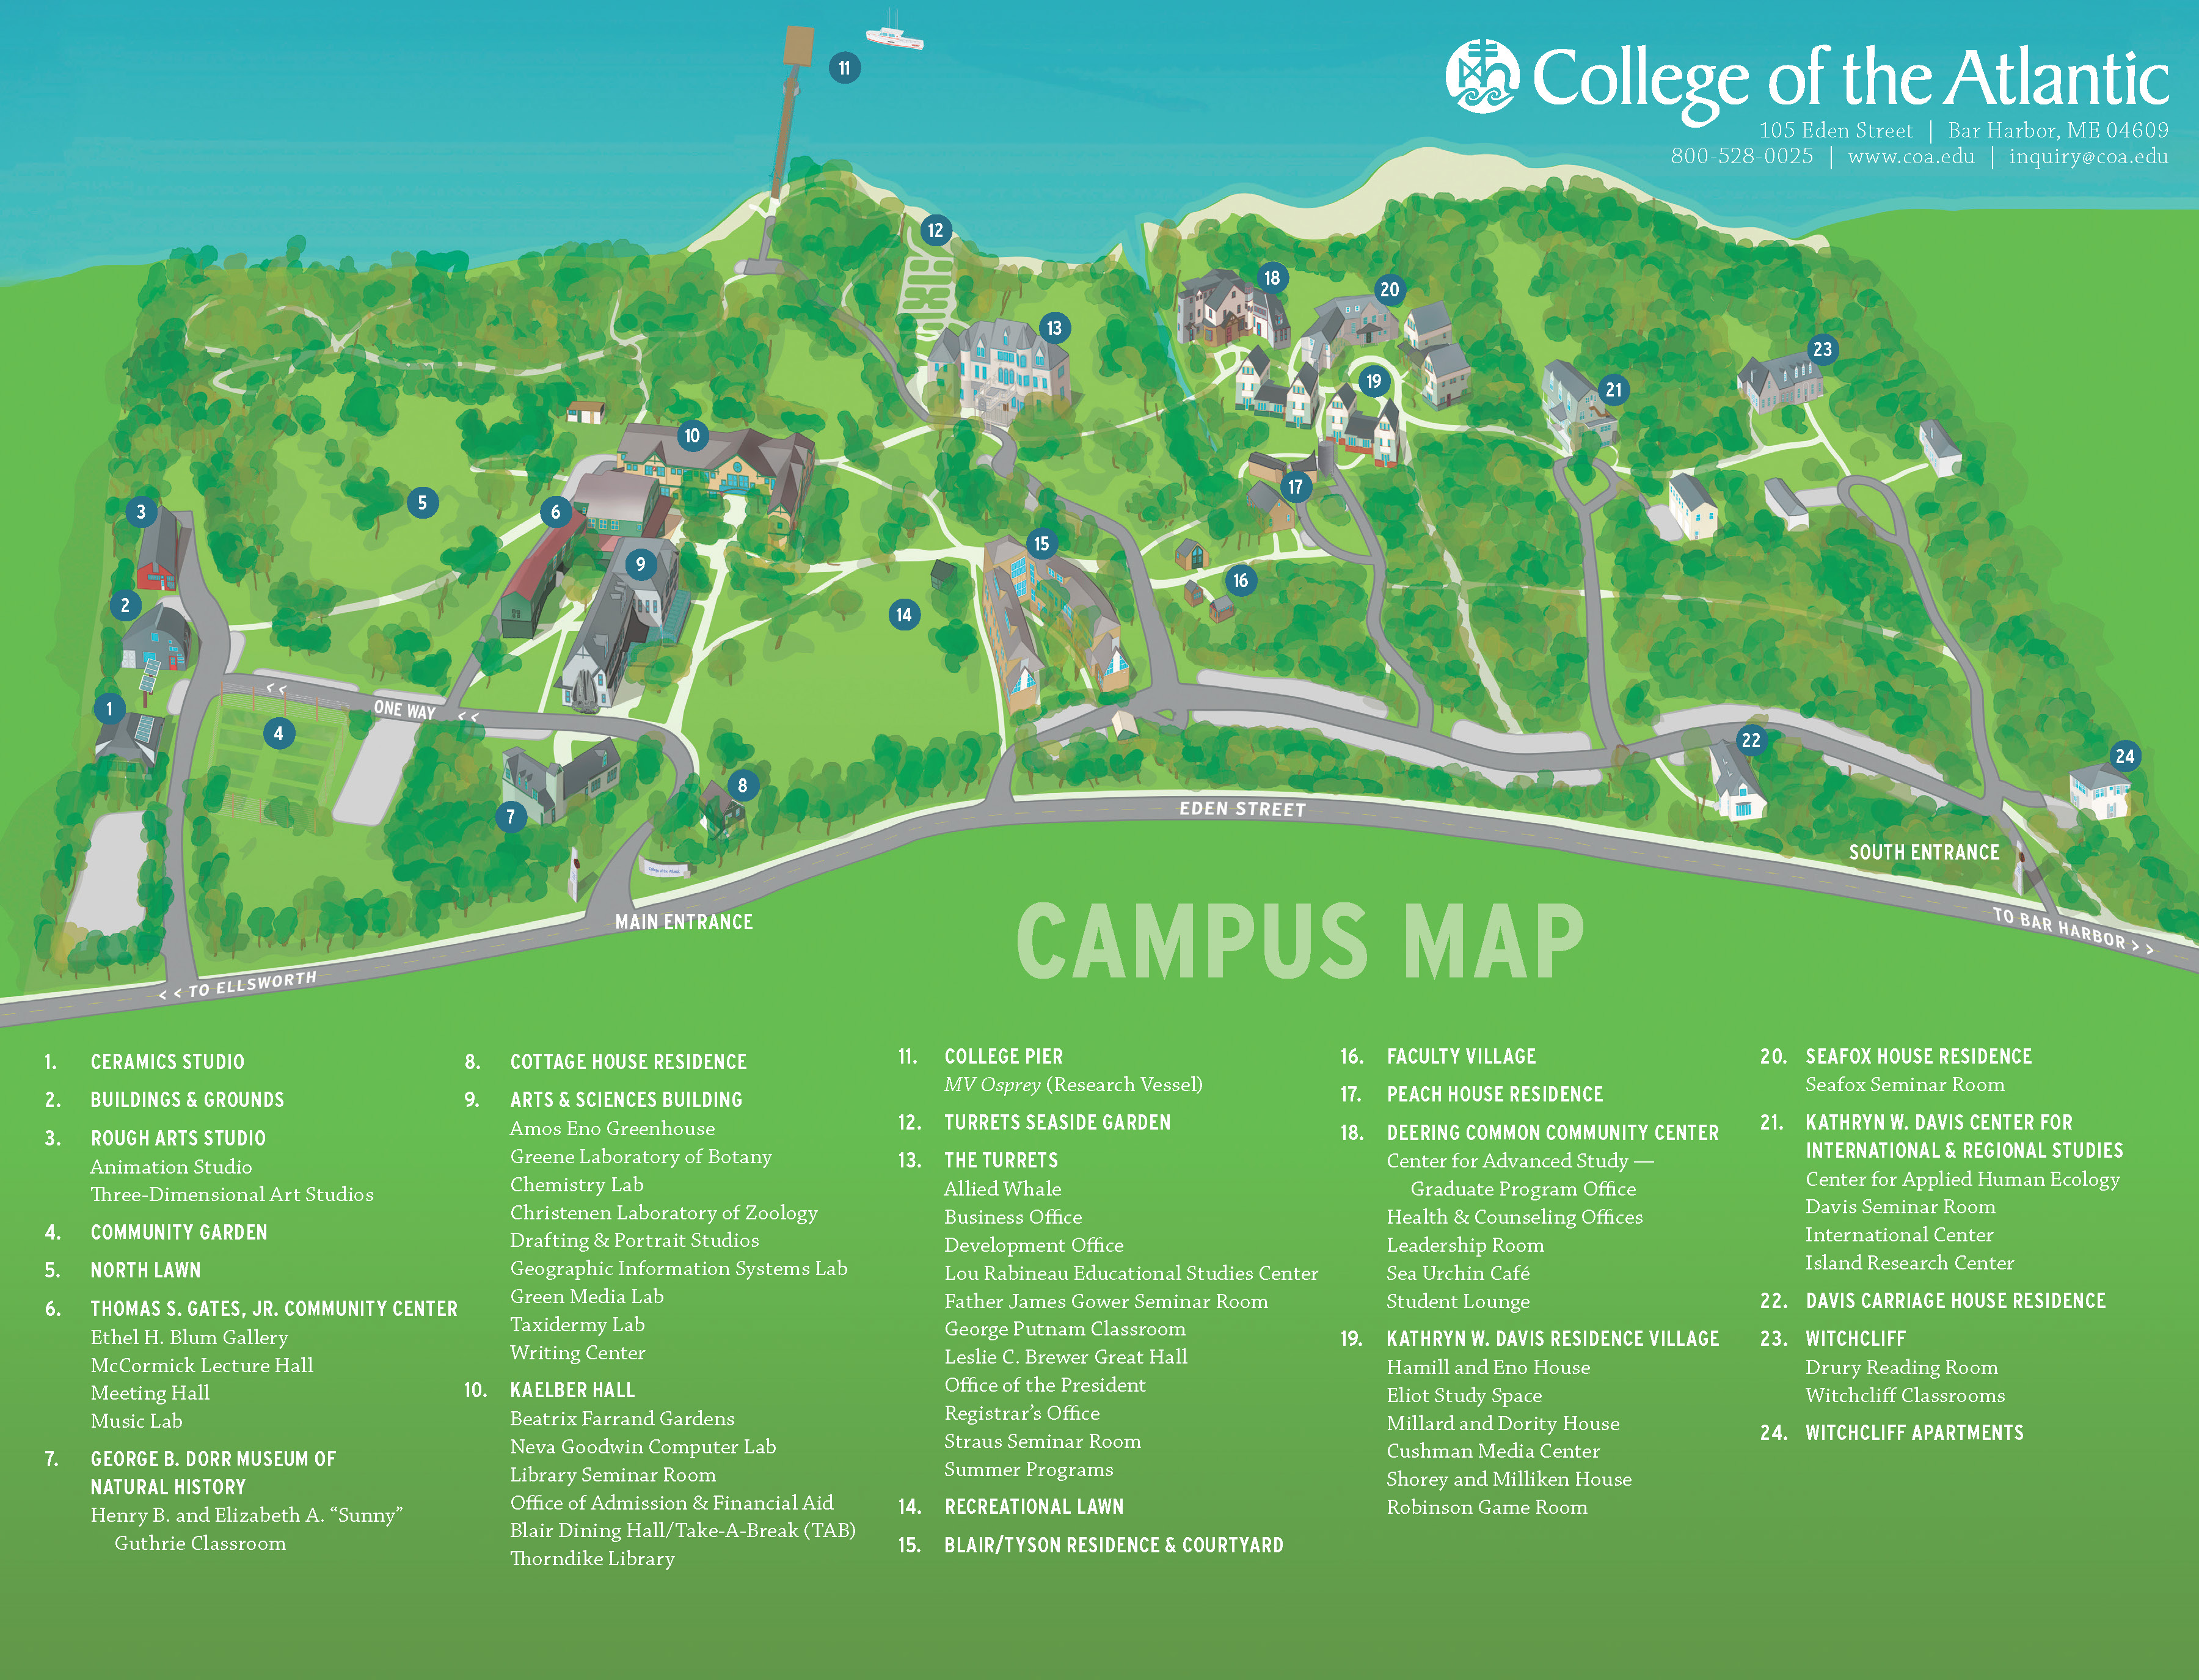 COA Campus Map — Illustration | Porcupine Design